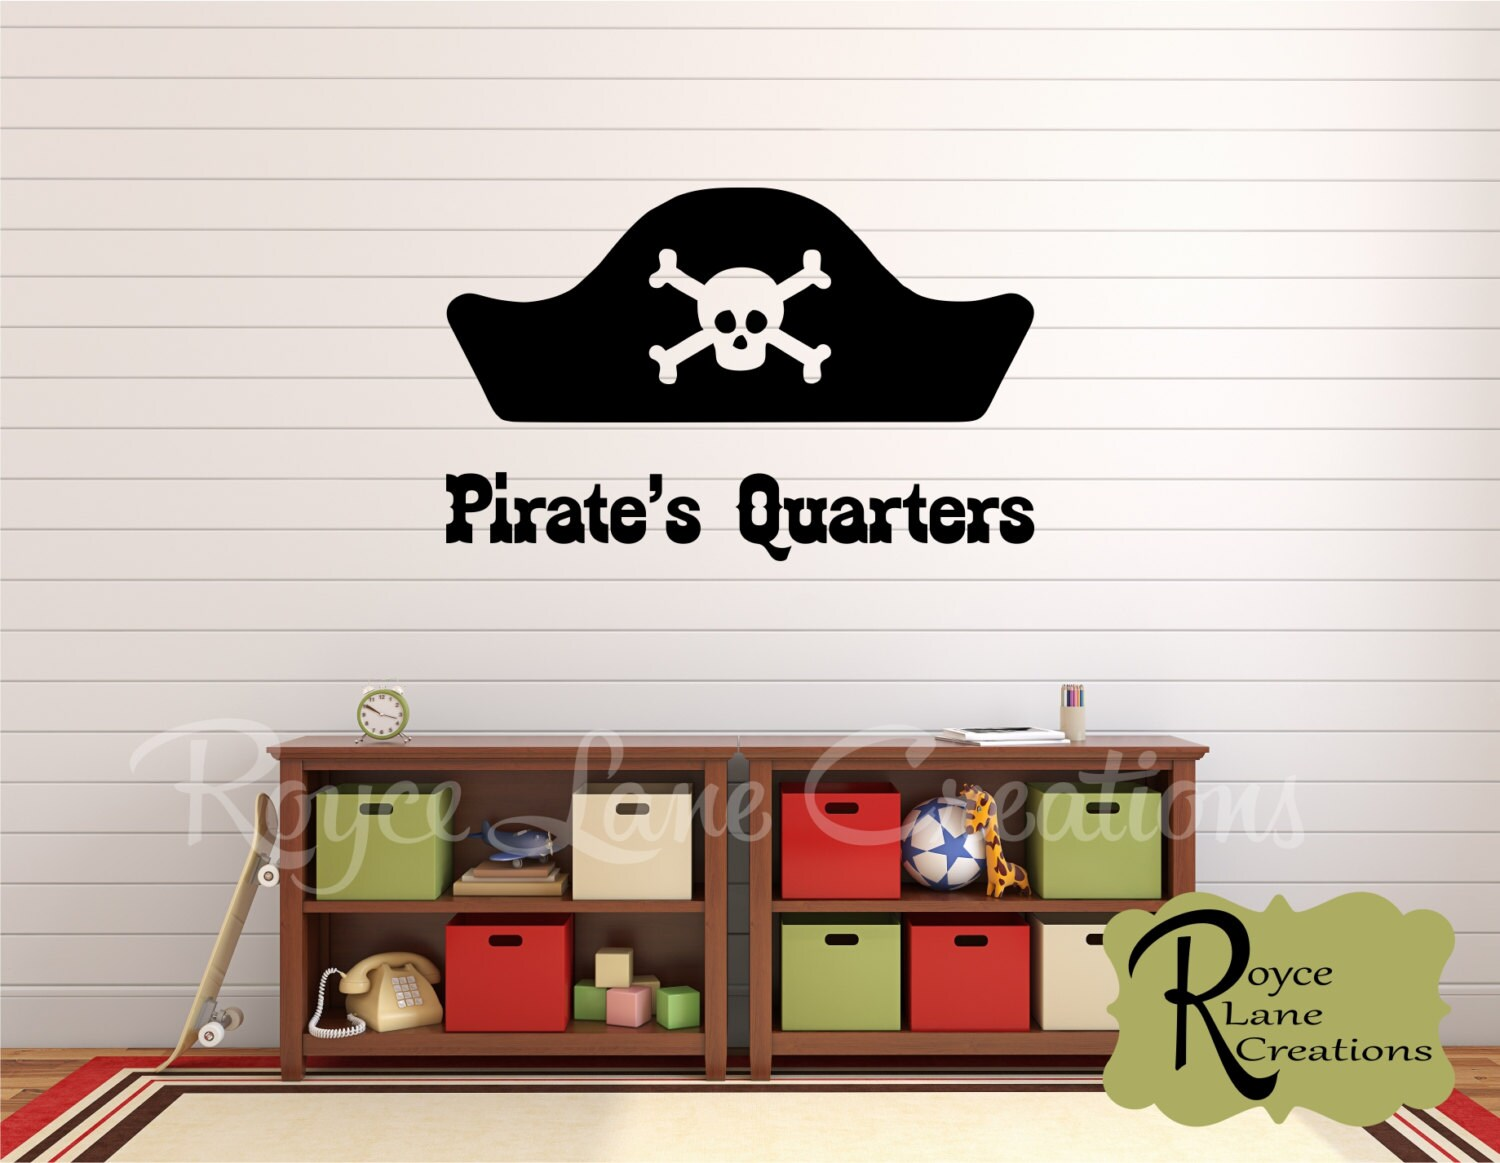 pirate decal pirate 39 s quarters pirate wall decal boys bedroom wall decal boys room decor wall. Black Bedroom Furniture Sets. Home Design Ideas